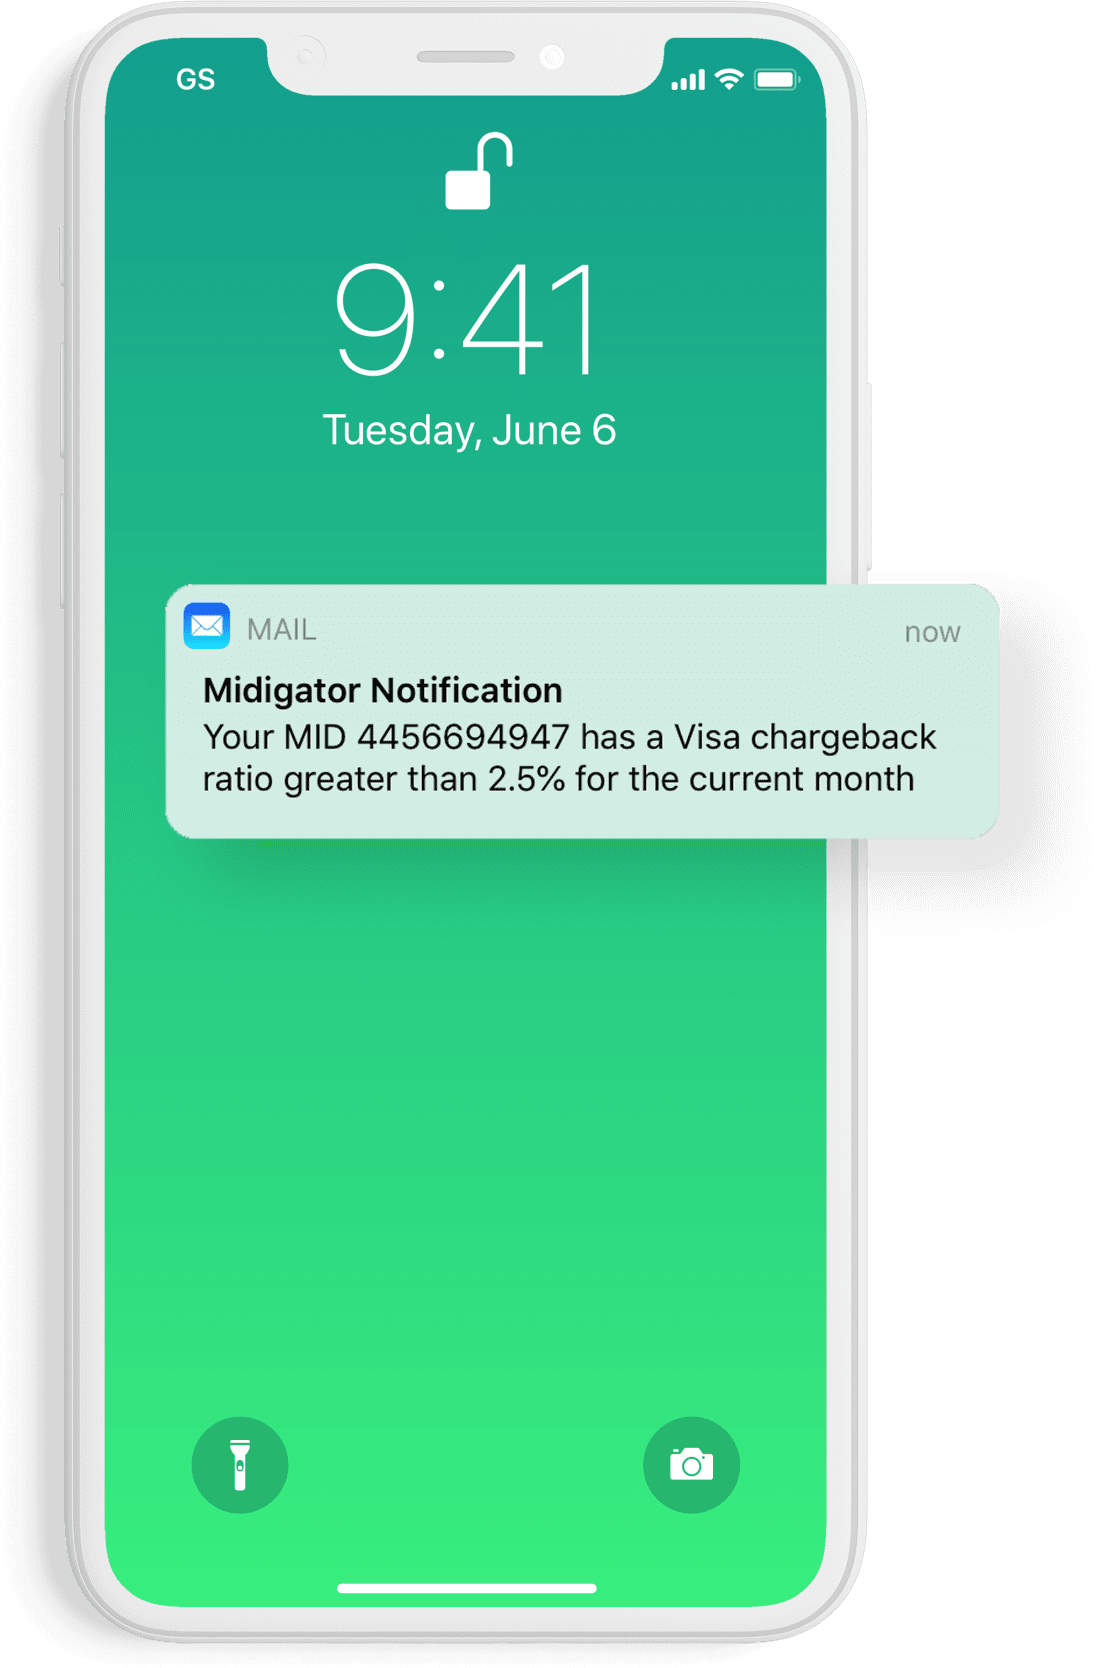 mail-notification-iphone@2x